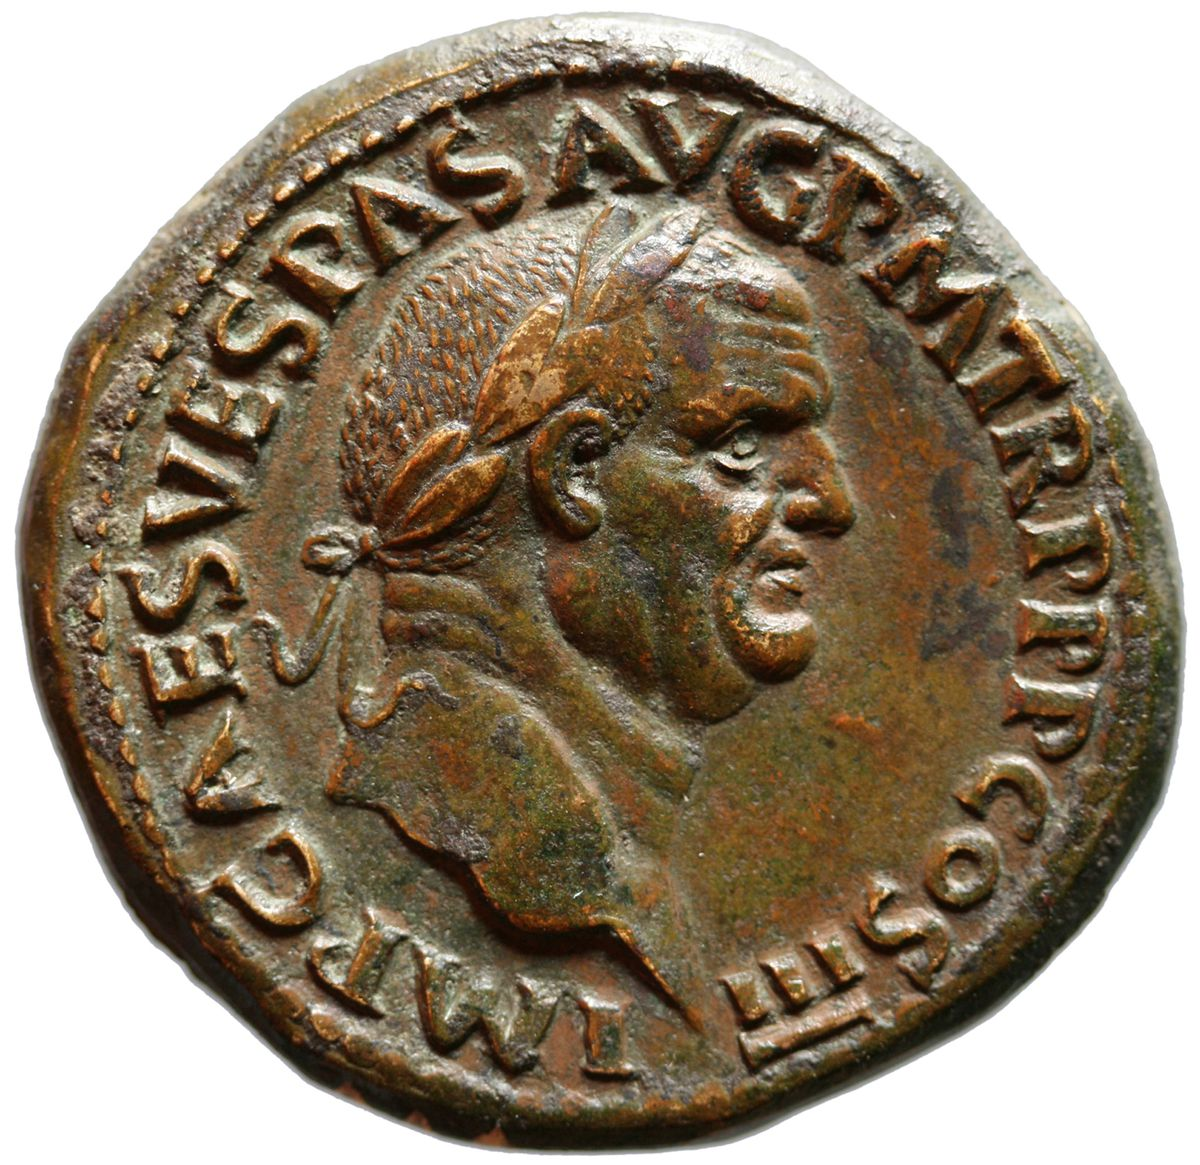 Sestertius of Vespasian, 71 AC. Private Collection. Artist : Numismatic, Ancient Coins.